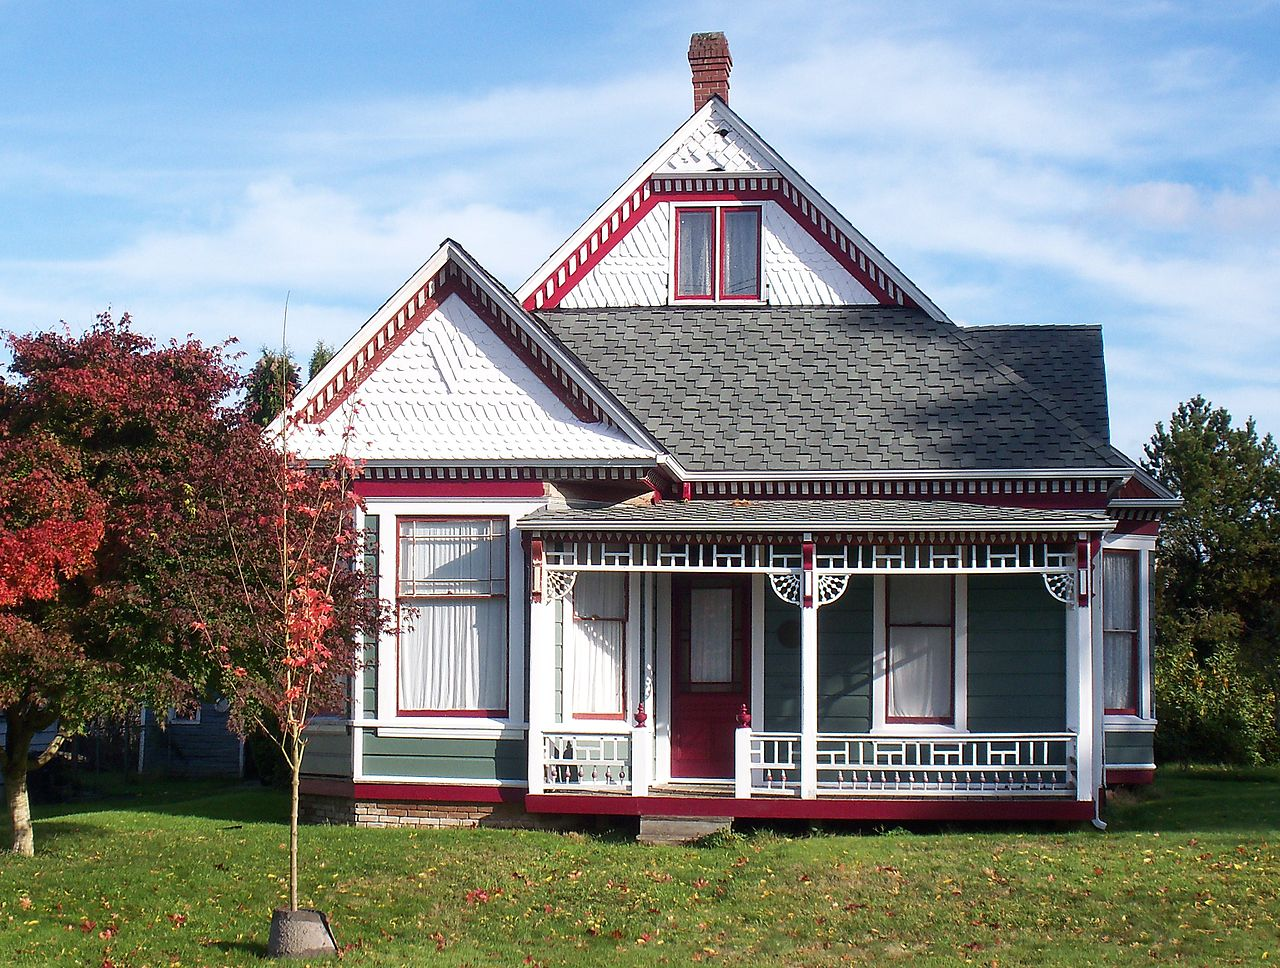 Built in 1882, the Hale House is one the most historic homes in Olympia.